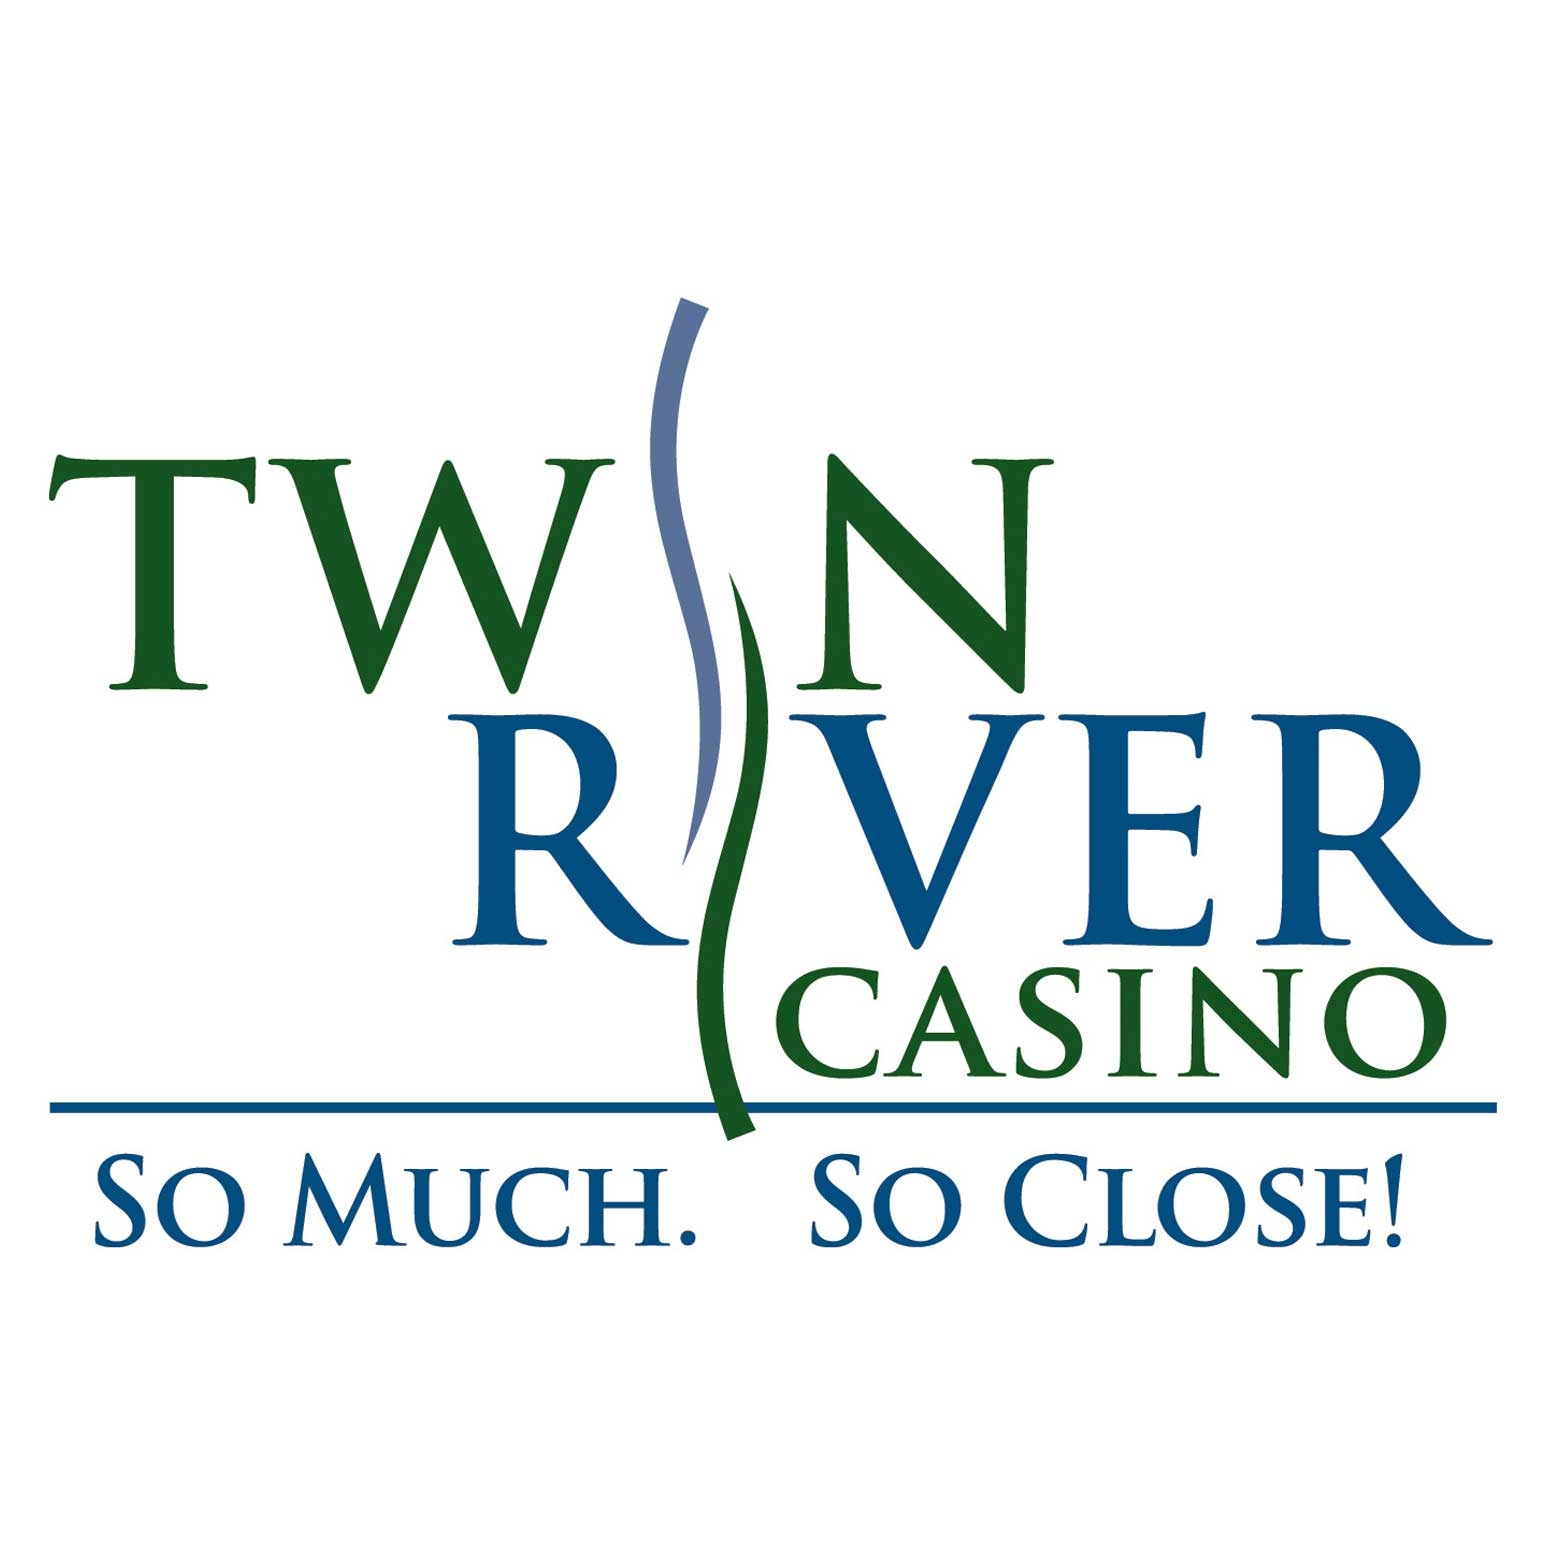 September 26, 2017: Twin River Casino to Host Hurricane Relief Fundraiser